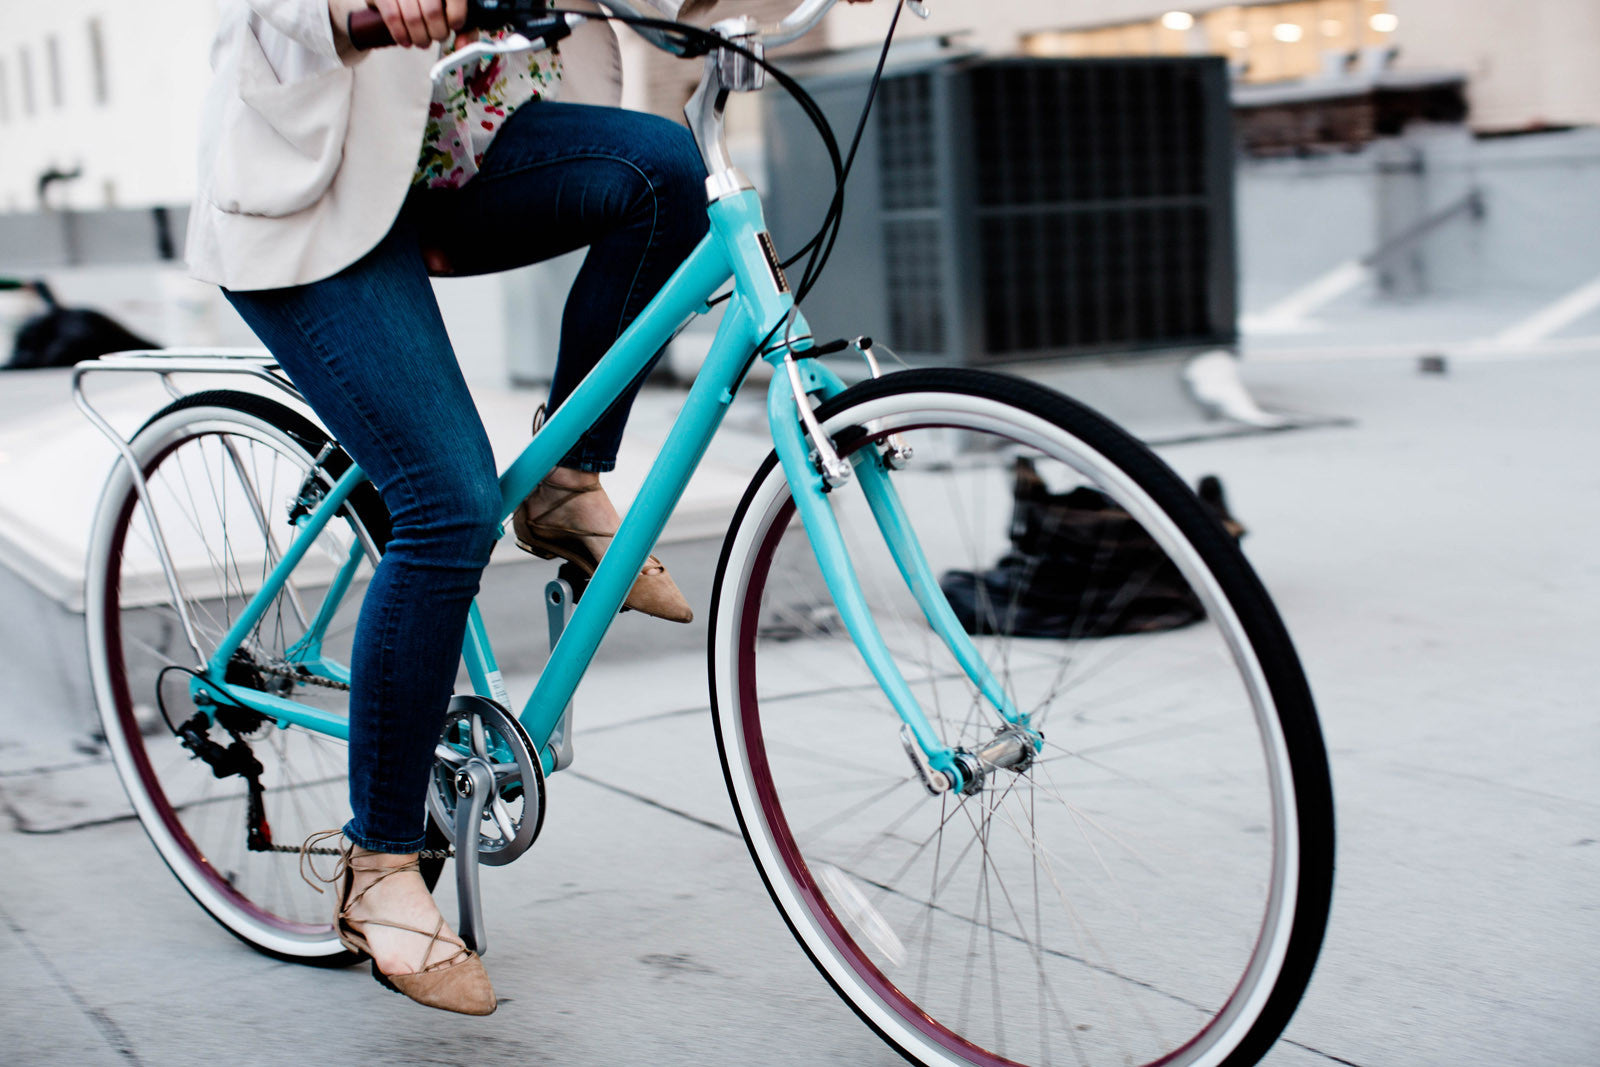 Do You Have Any Women's 1 Speed Bikes Available in Teal?